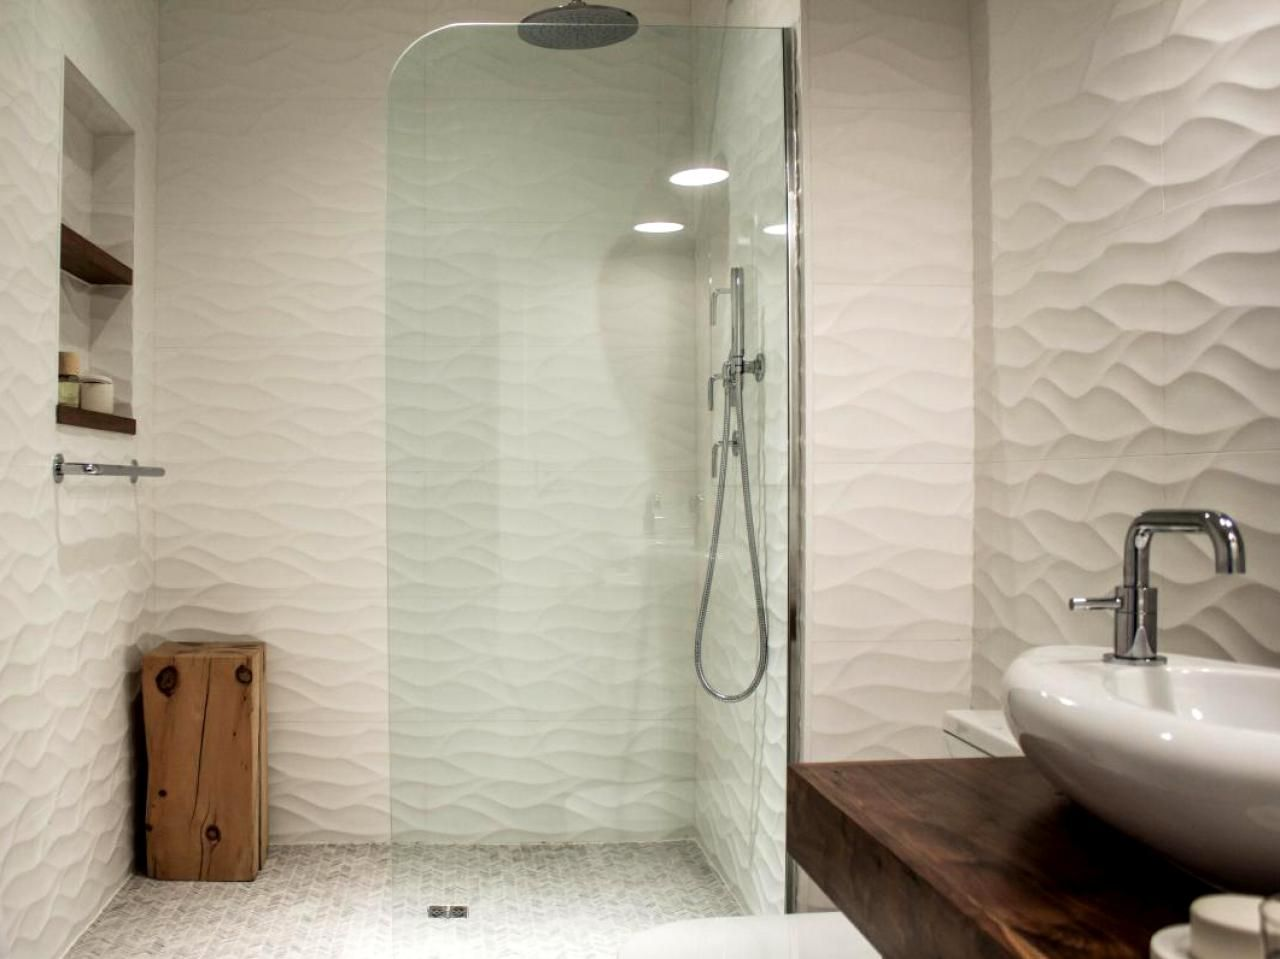 Beau HOME DECOR BATHROOM REMODEL: Use Three Dimensional Tiles To Add Texture To  A Flat Space. These Tiles Come In Organic Waves As Well As Symmetrical  Patterns.